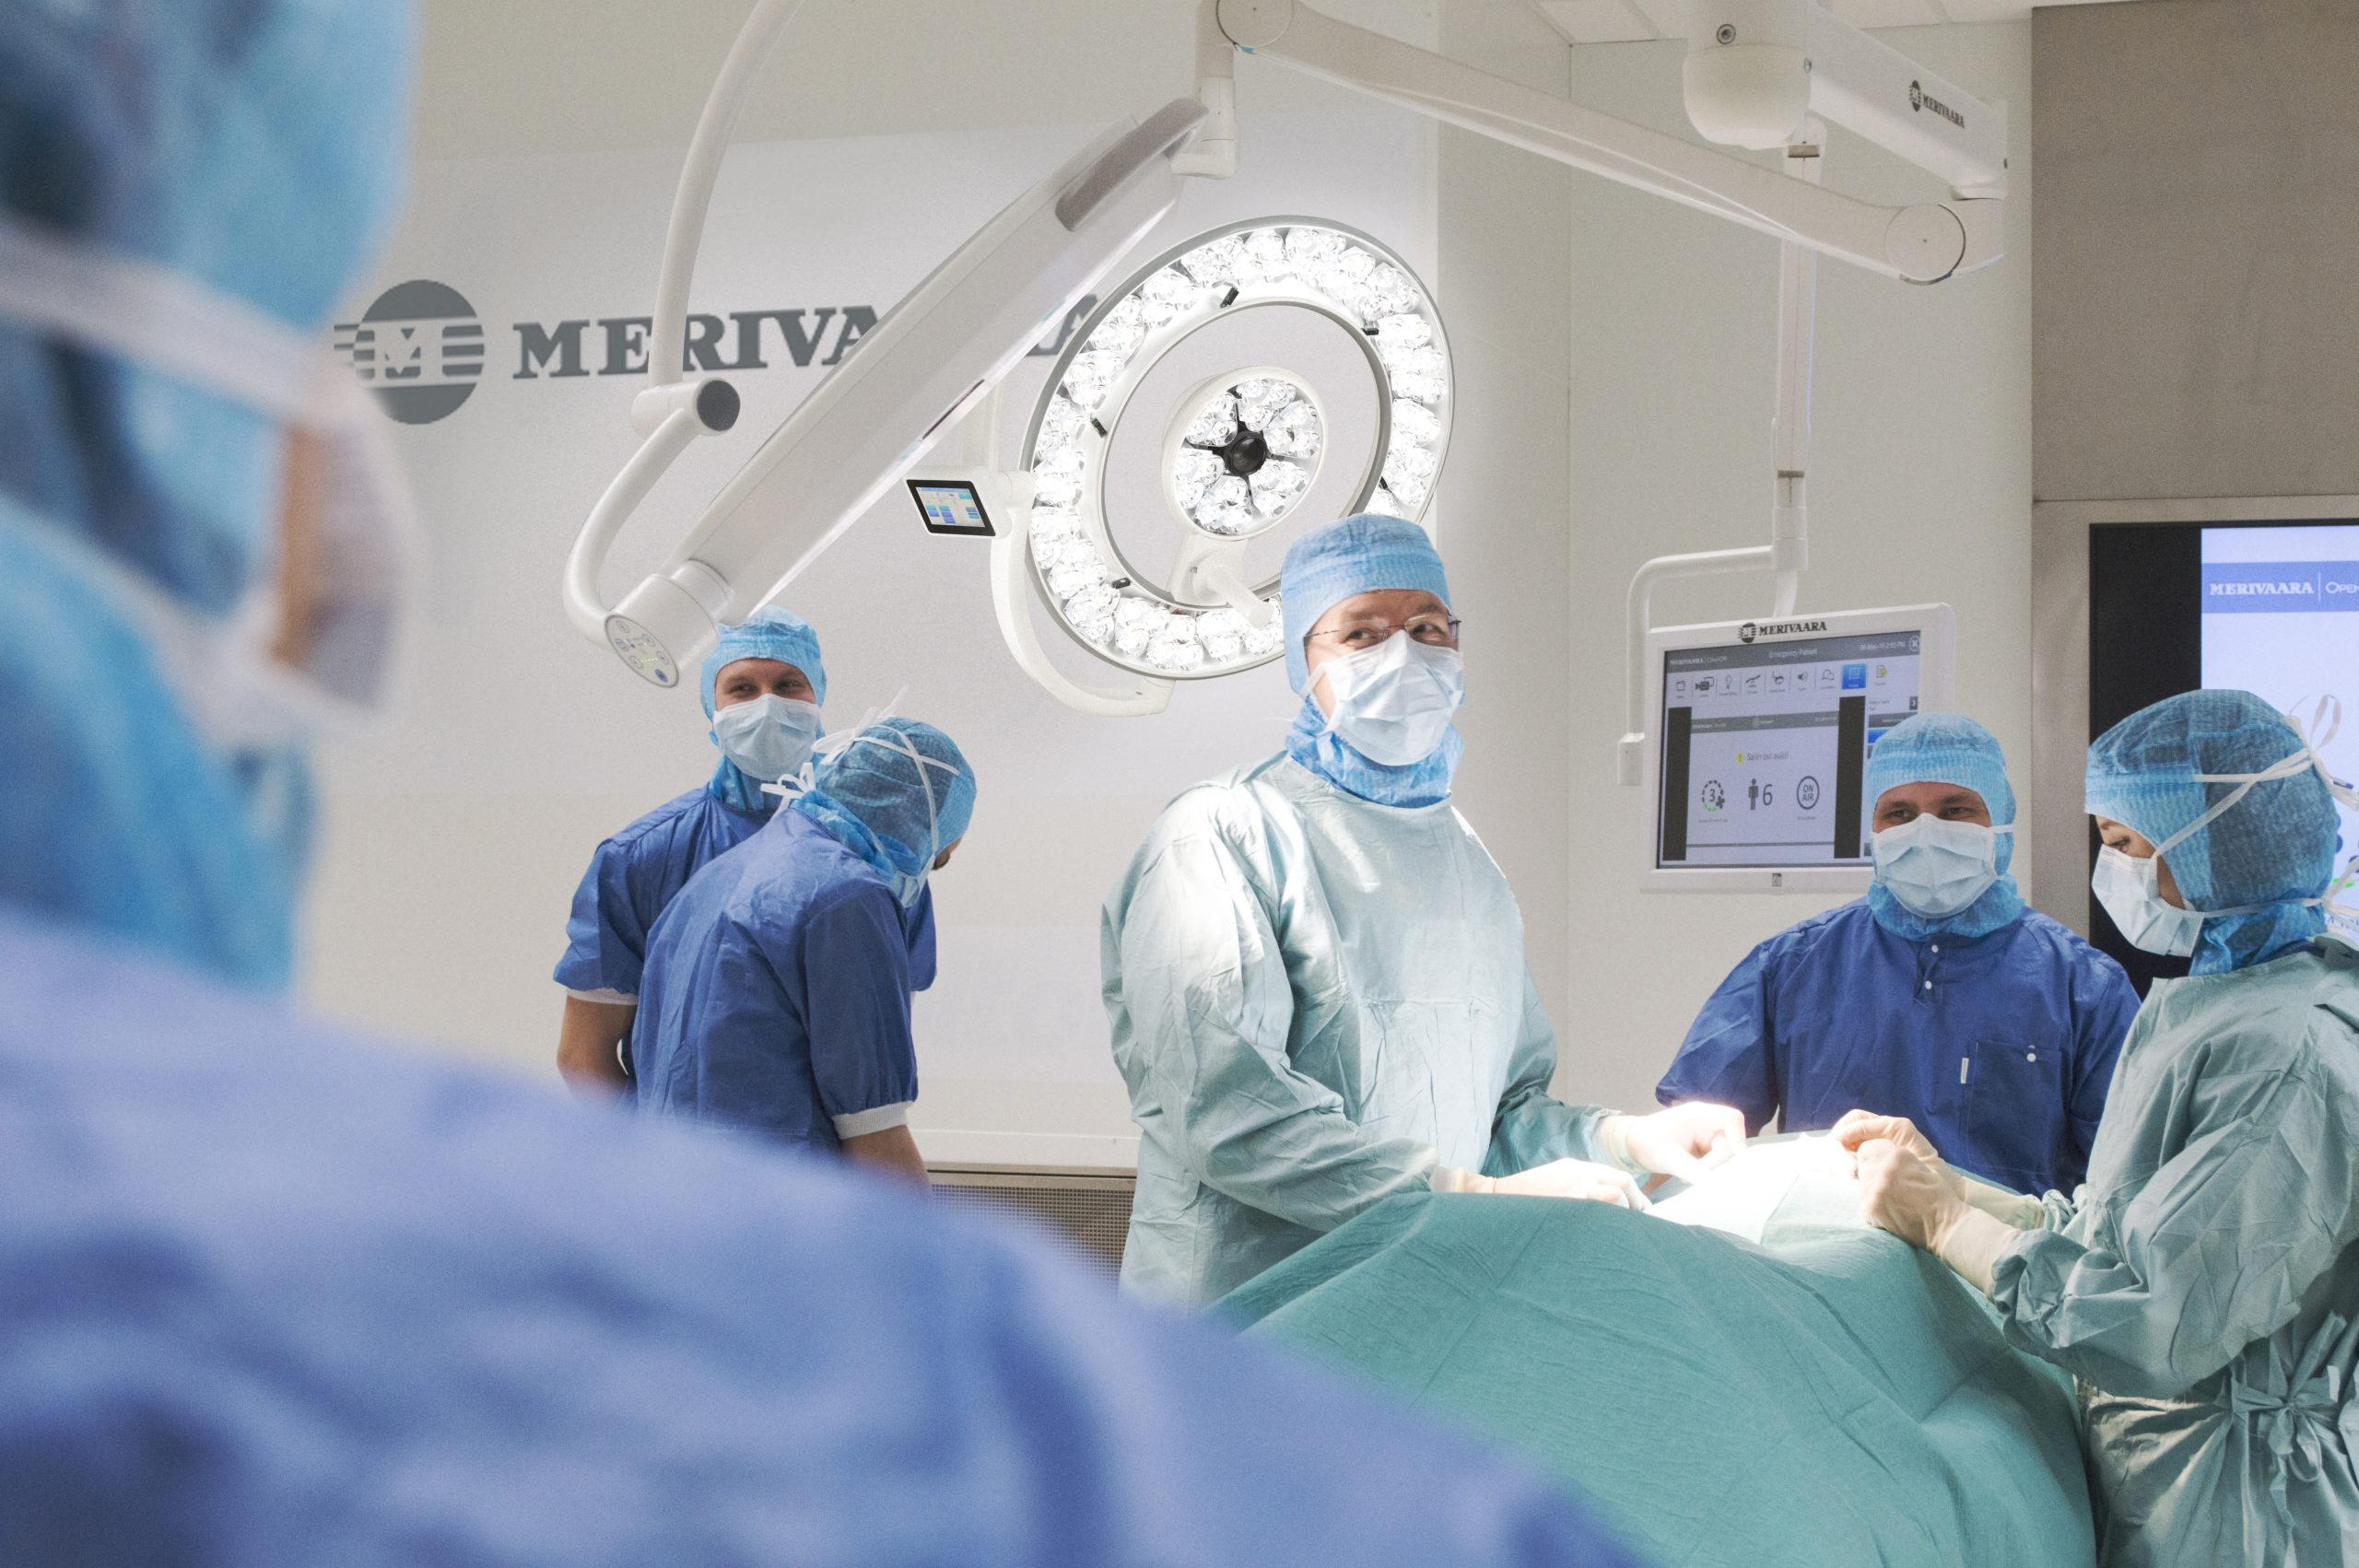 CASE: Integrated operating room system for Merivaara